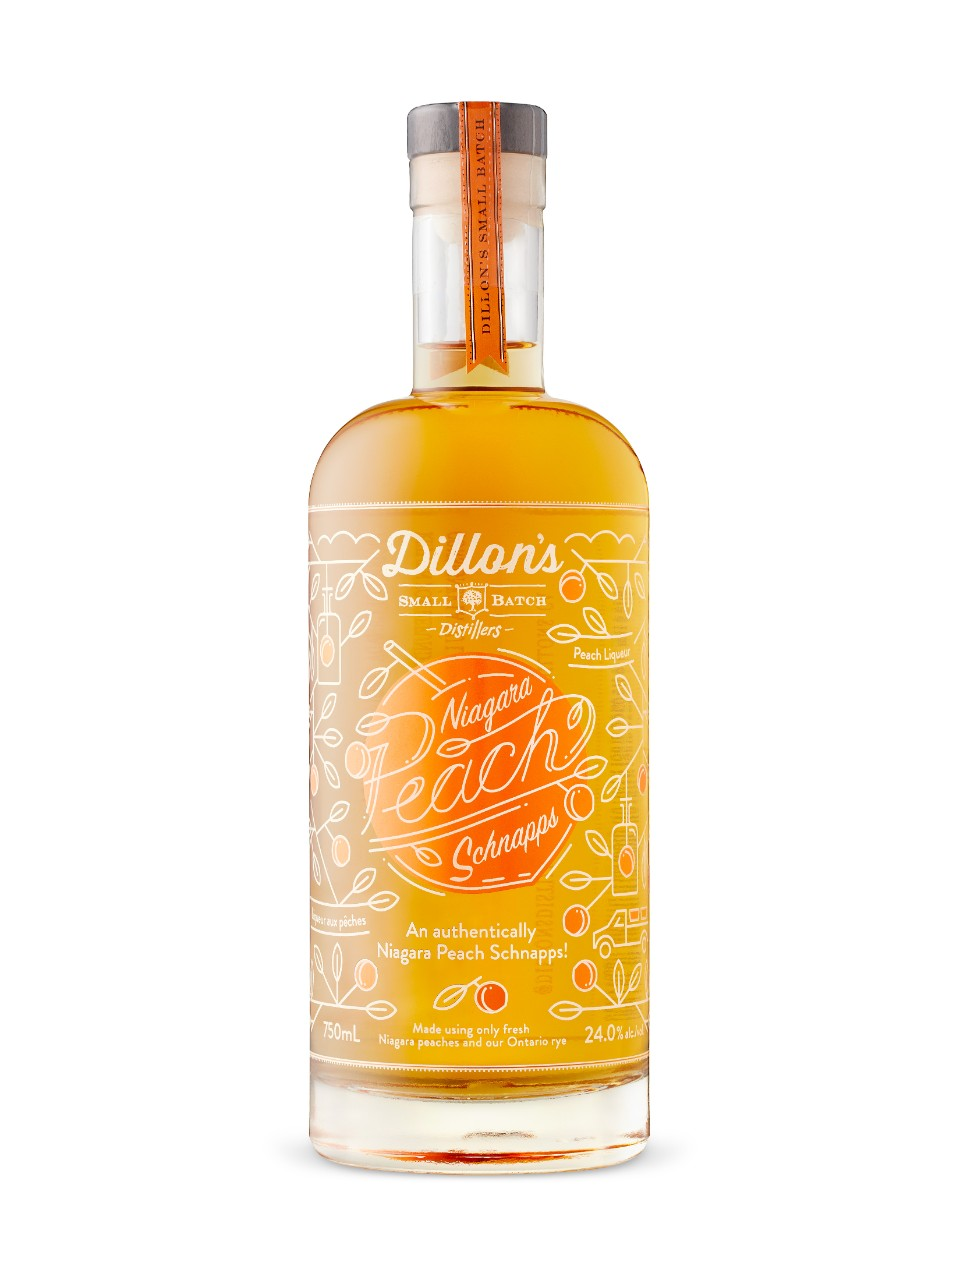 Dillons Small Batch Peach Schnapps